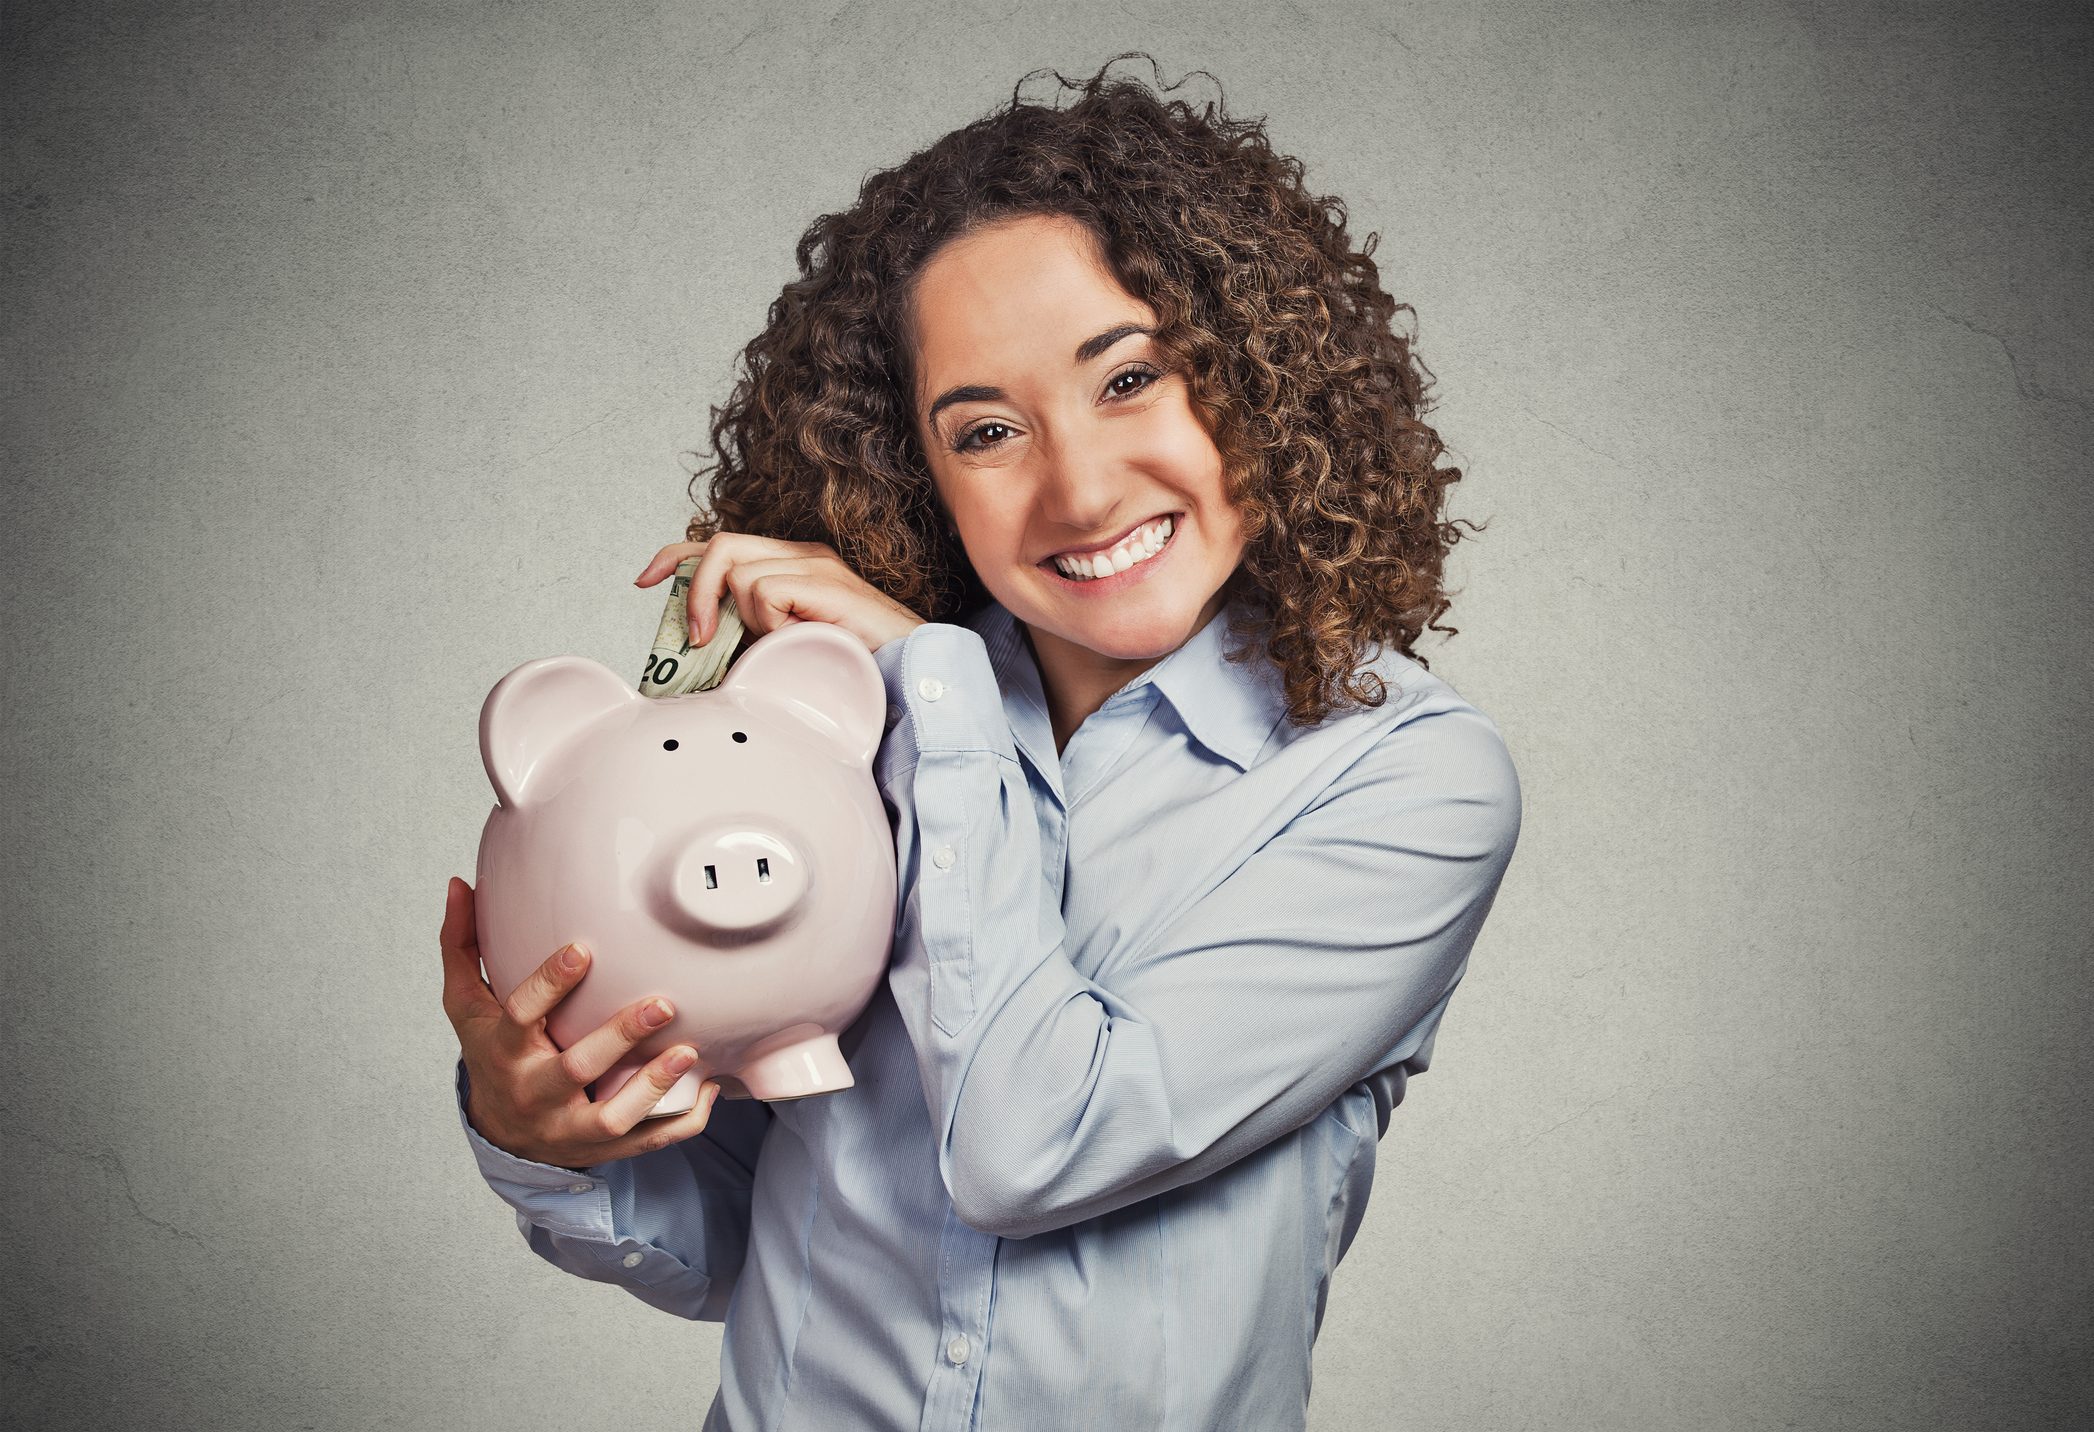 A smiling woman putting money into a piggy bank.